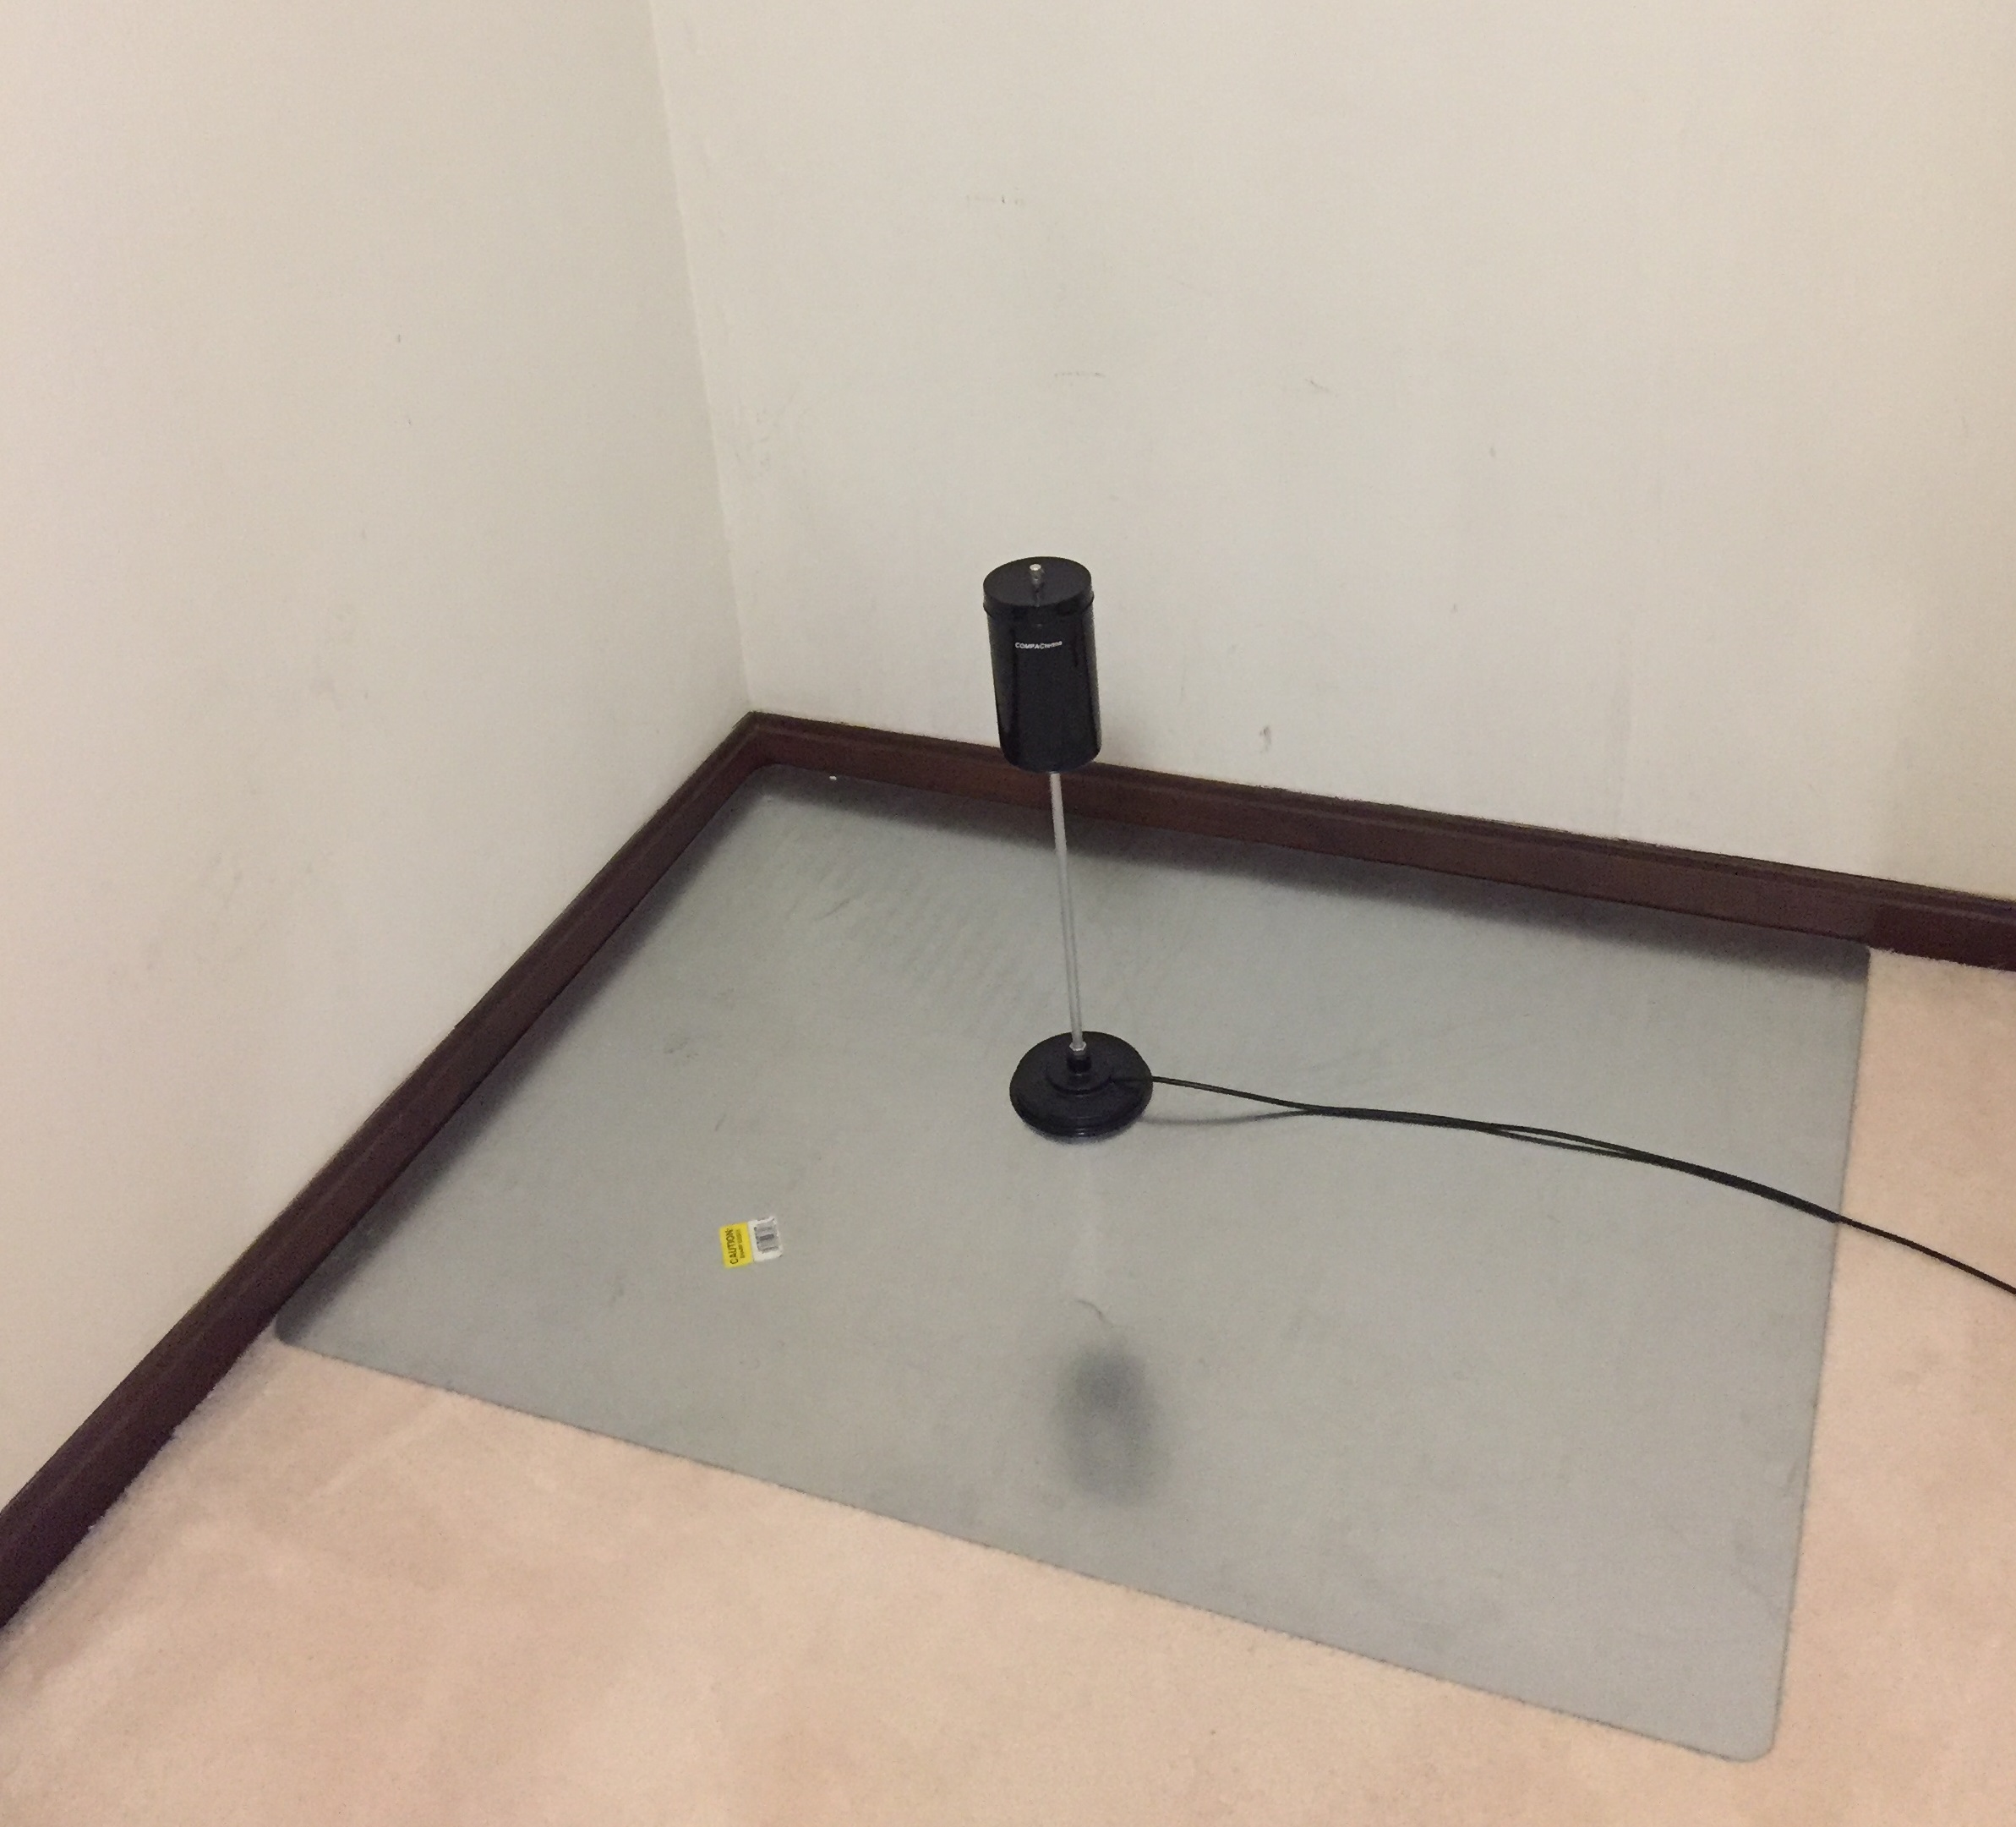 COMPACtenna 20M-2M-440 on floor in house